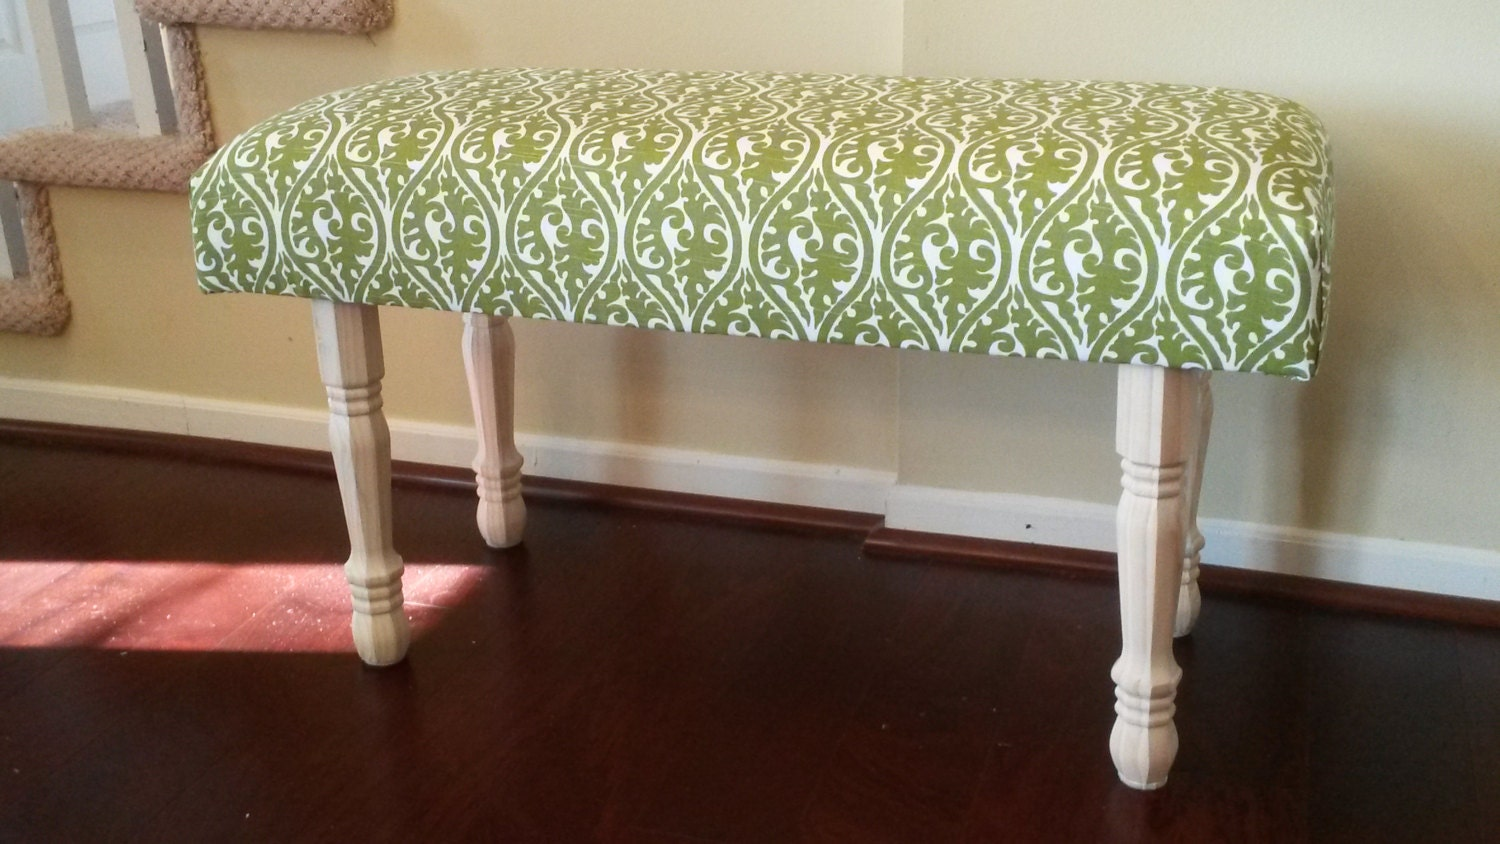 Upholstered Bench Green And White Fabric: white upholstered bench